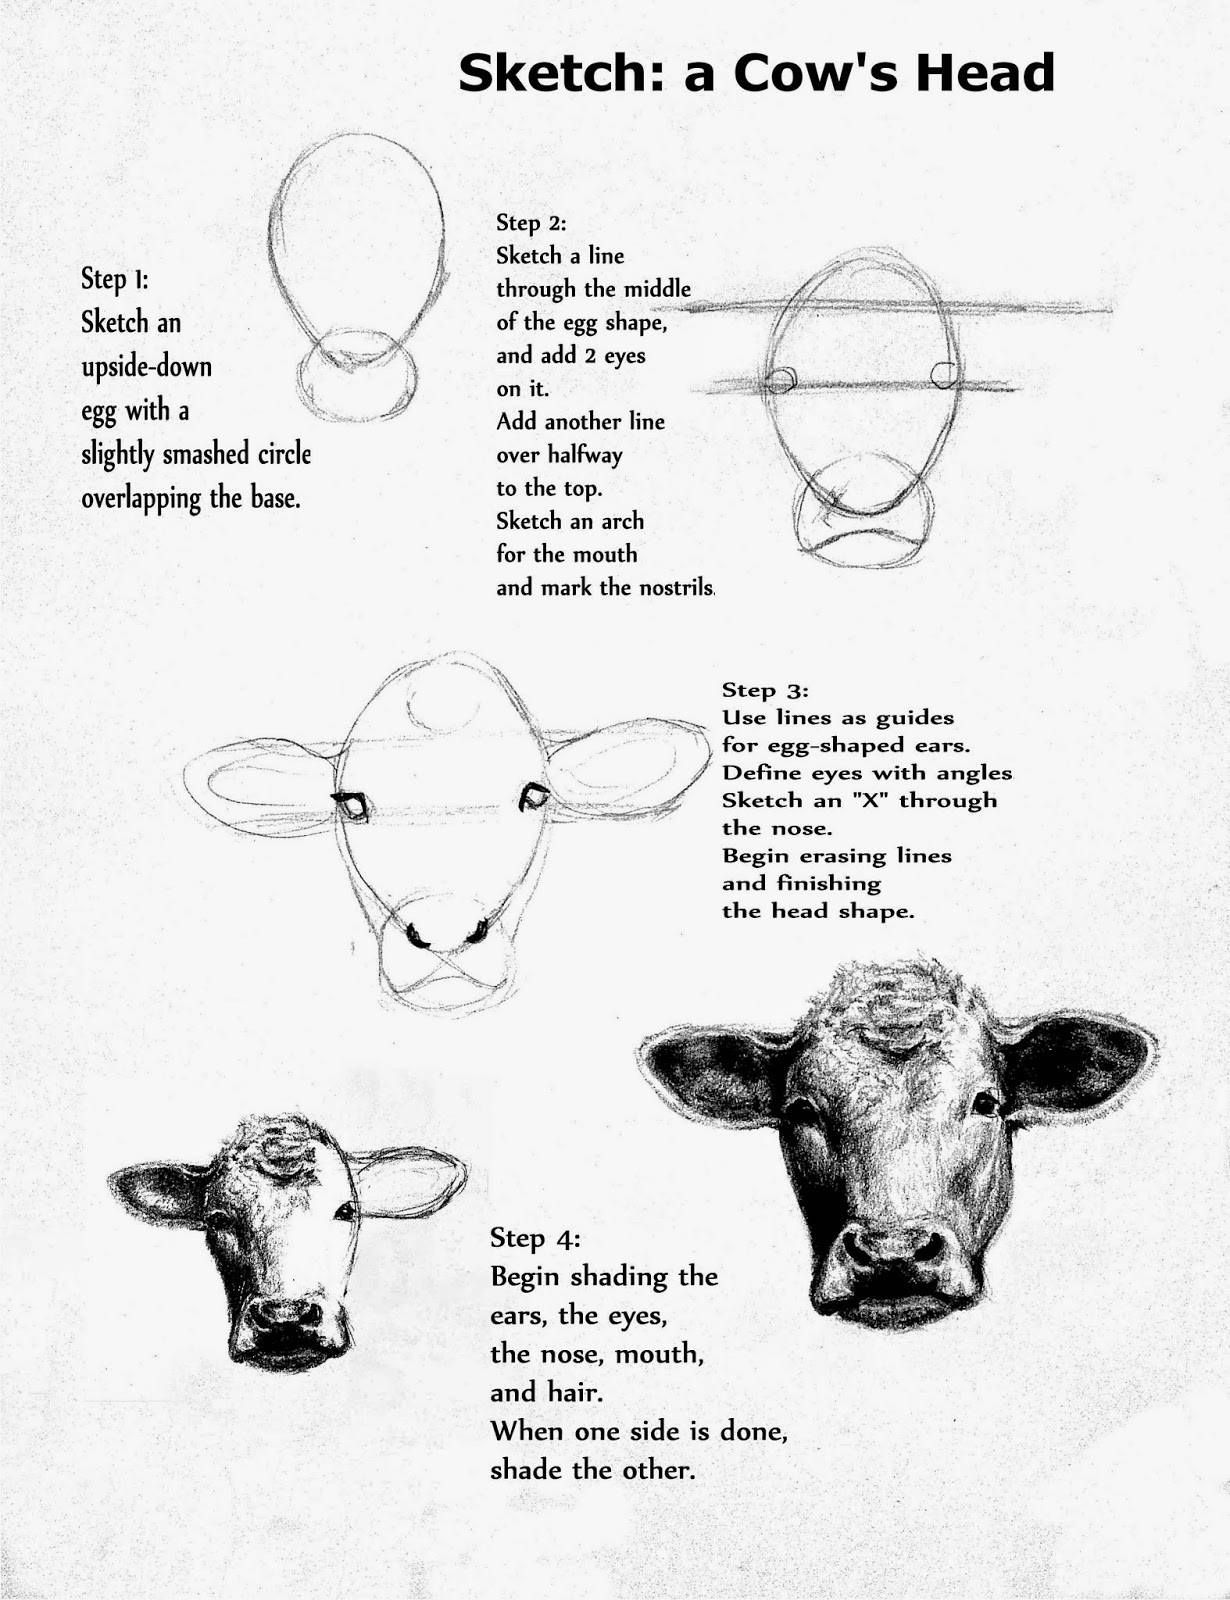 Follow These Simple Steps To Easily Sketch A Cow S Head Cow